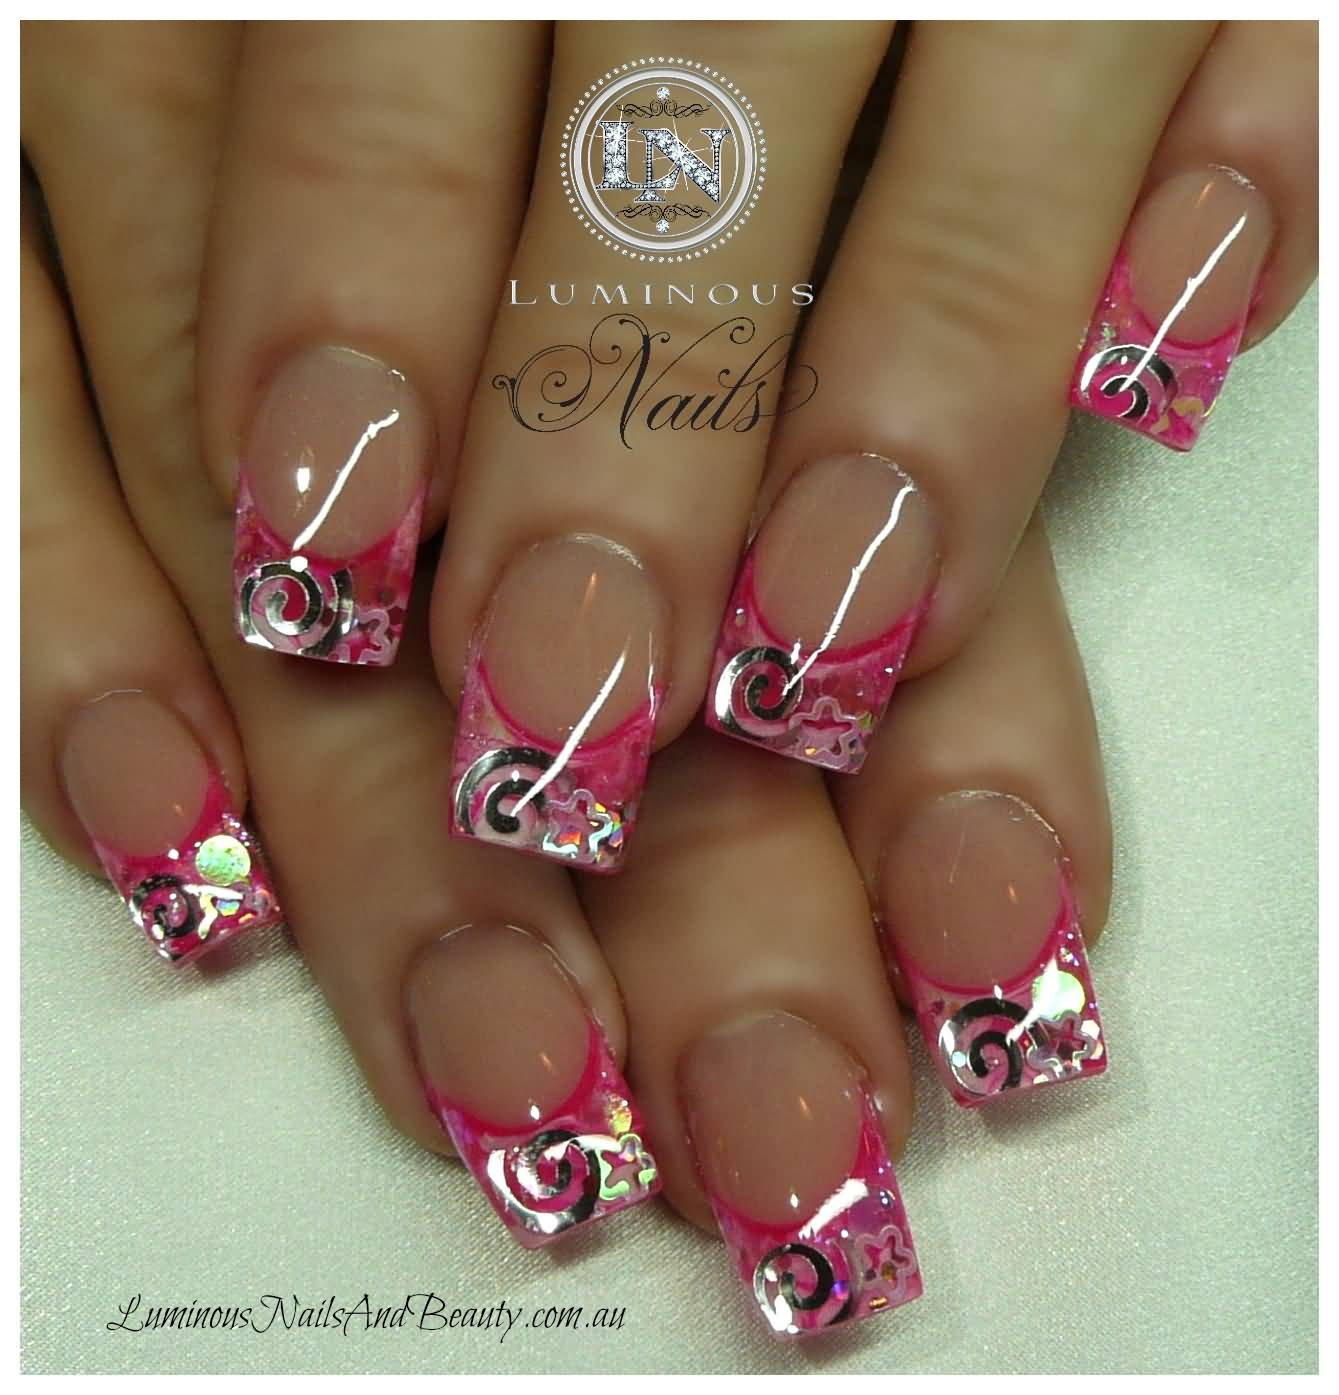 Acrylic nail designs hot pink hot pink zebra acrylic nails nail view images pink glitter acrylic nail design ideas prinsesfo Choice Image